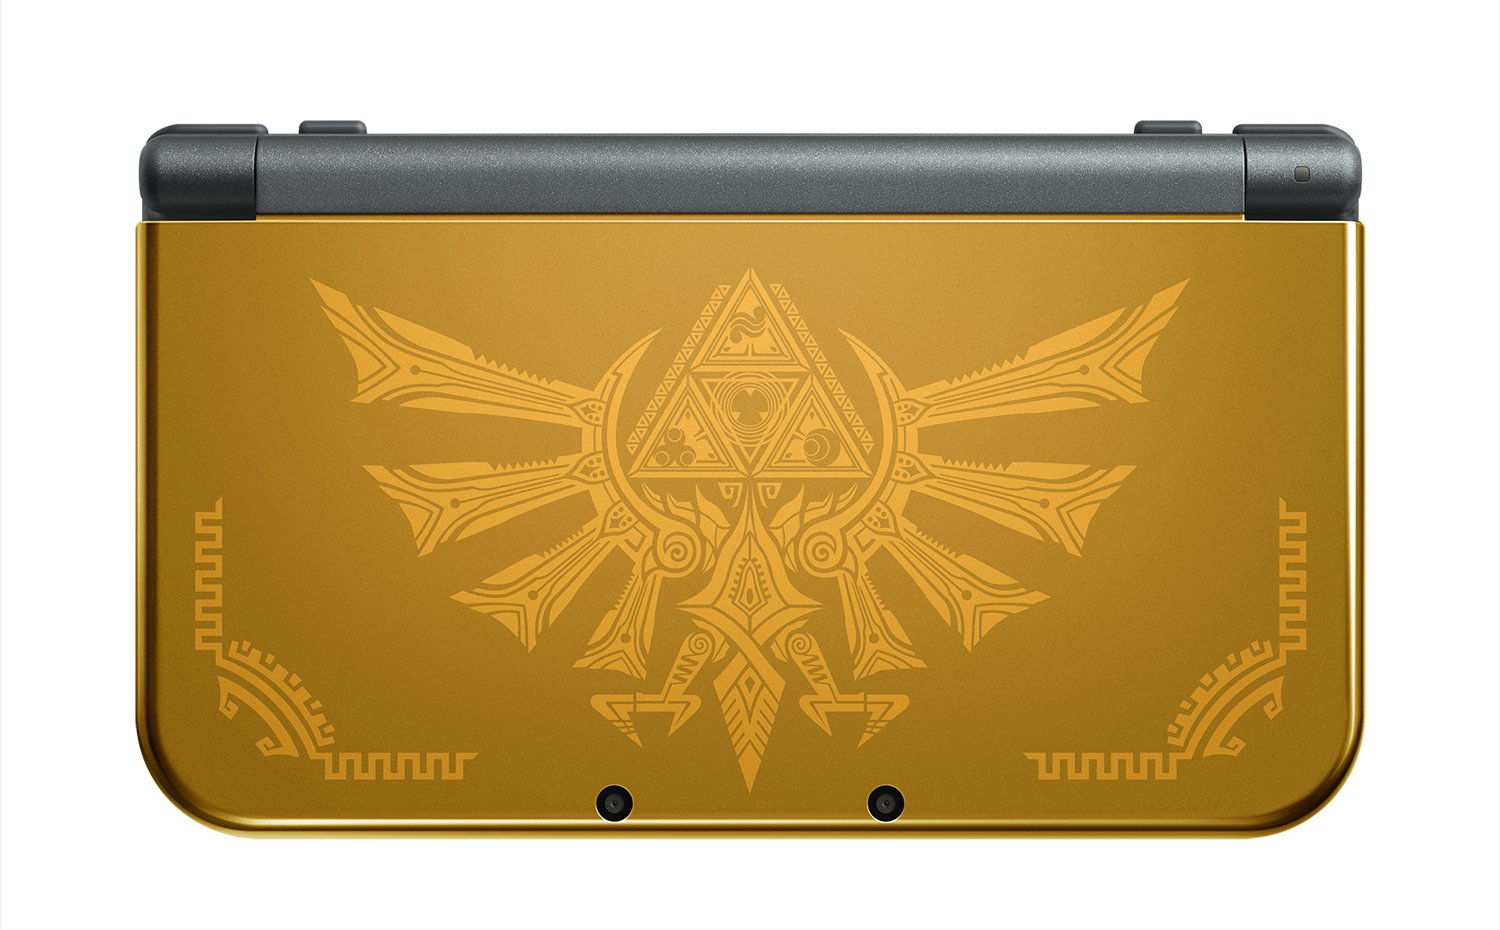 New Nintendo 3DS LL Hailar edition (Japanese Imported Version - only plays Japanese version games) [Japan Import] by 任天堂 (Image #2)